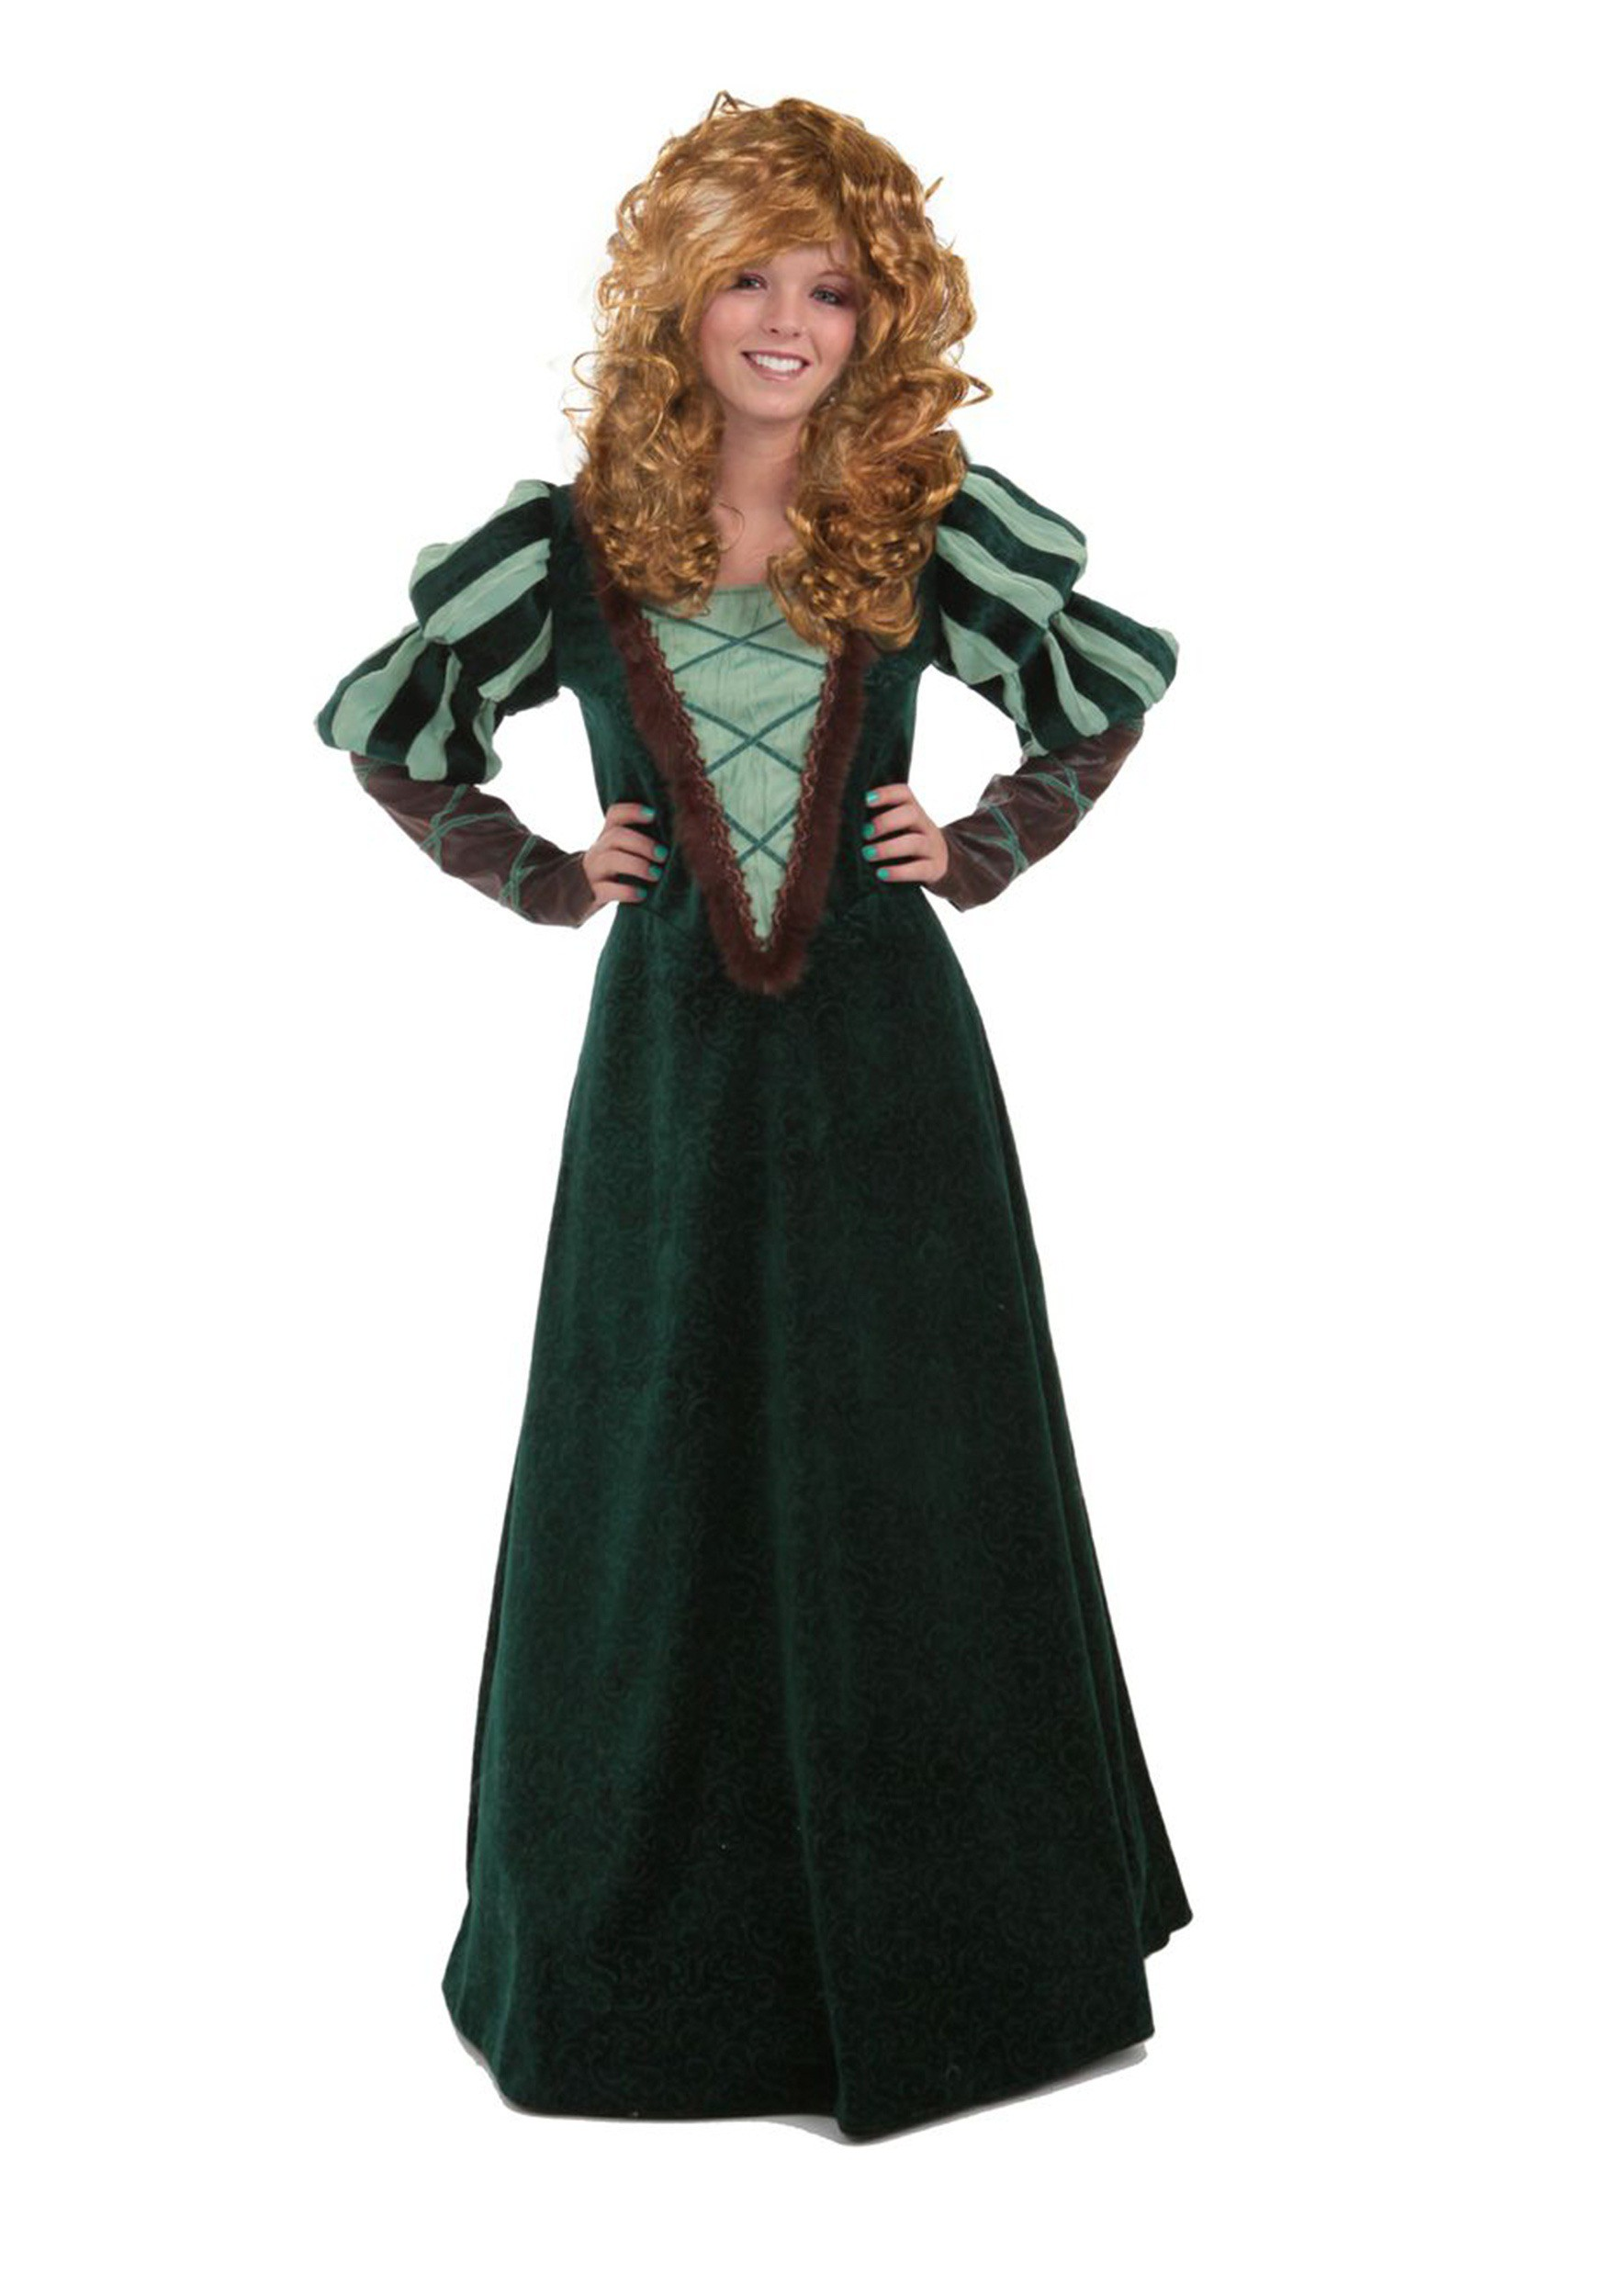 sc 1 st  Halloween Costumes : cheap adult princess costume  - Germanpascual.Com